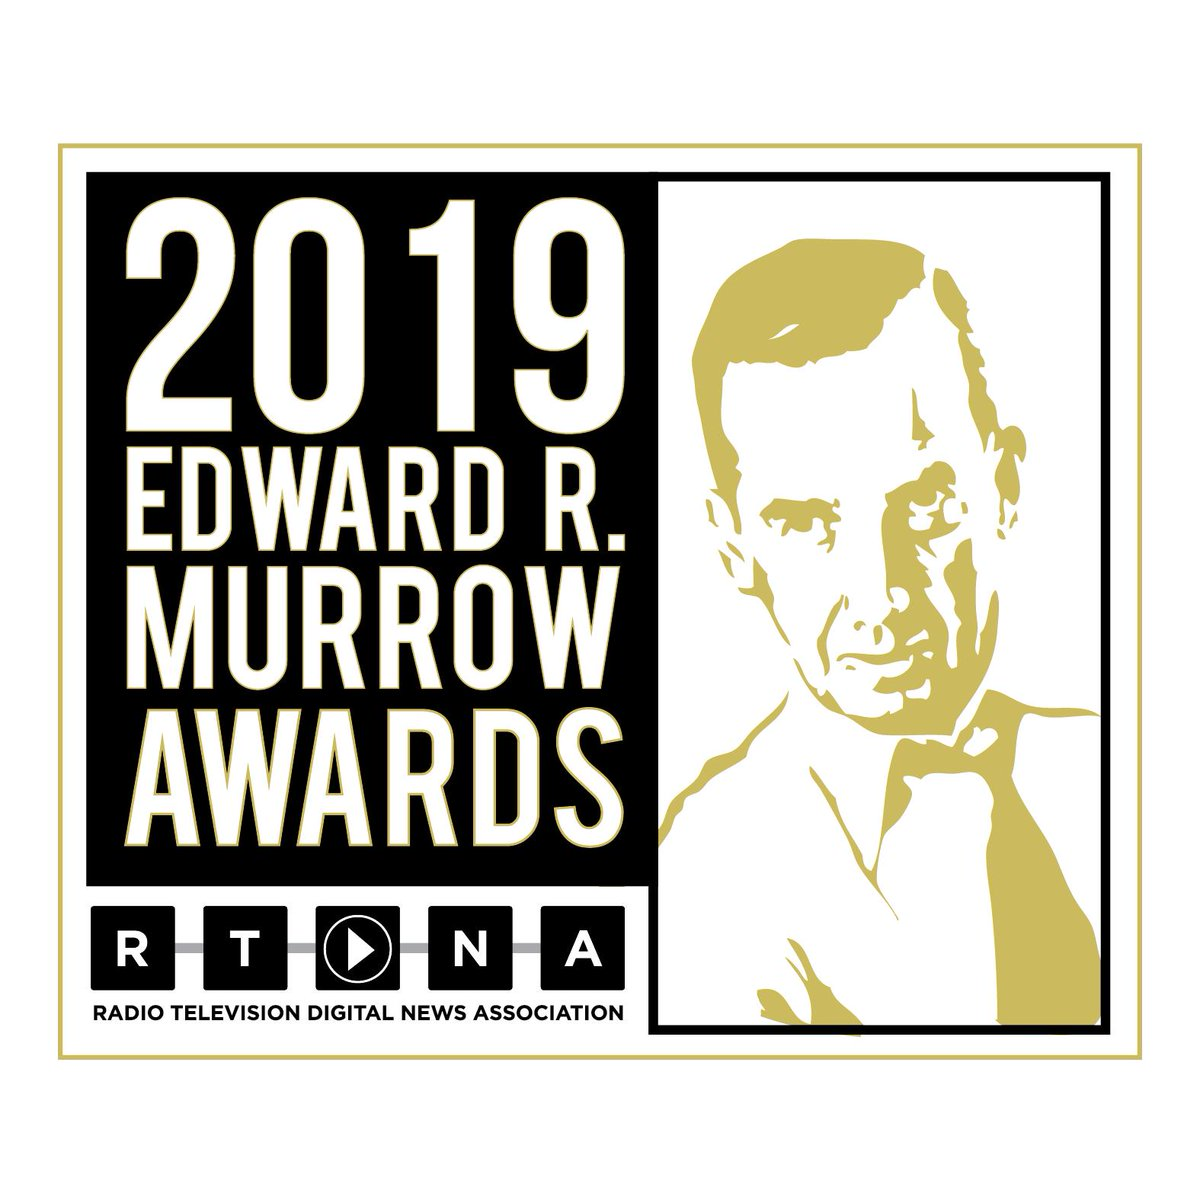 It's an absolute honor to announce that we are the recipient of a Regional Edward R. Murrow Award for Excellence in Social Media for our coverage of the Merrimack Valley Gas Explosions! Congrats to the #Boston25 Digital News team!  @RTDNA<br>http://pic.twitter.com/dyIxkpQvyn